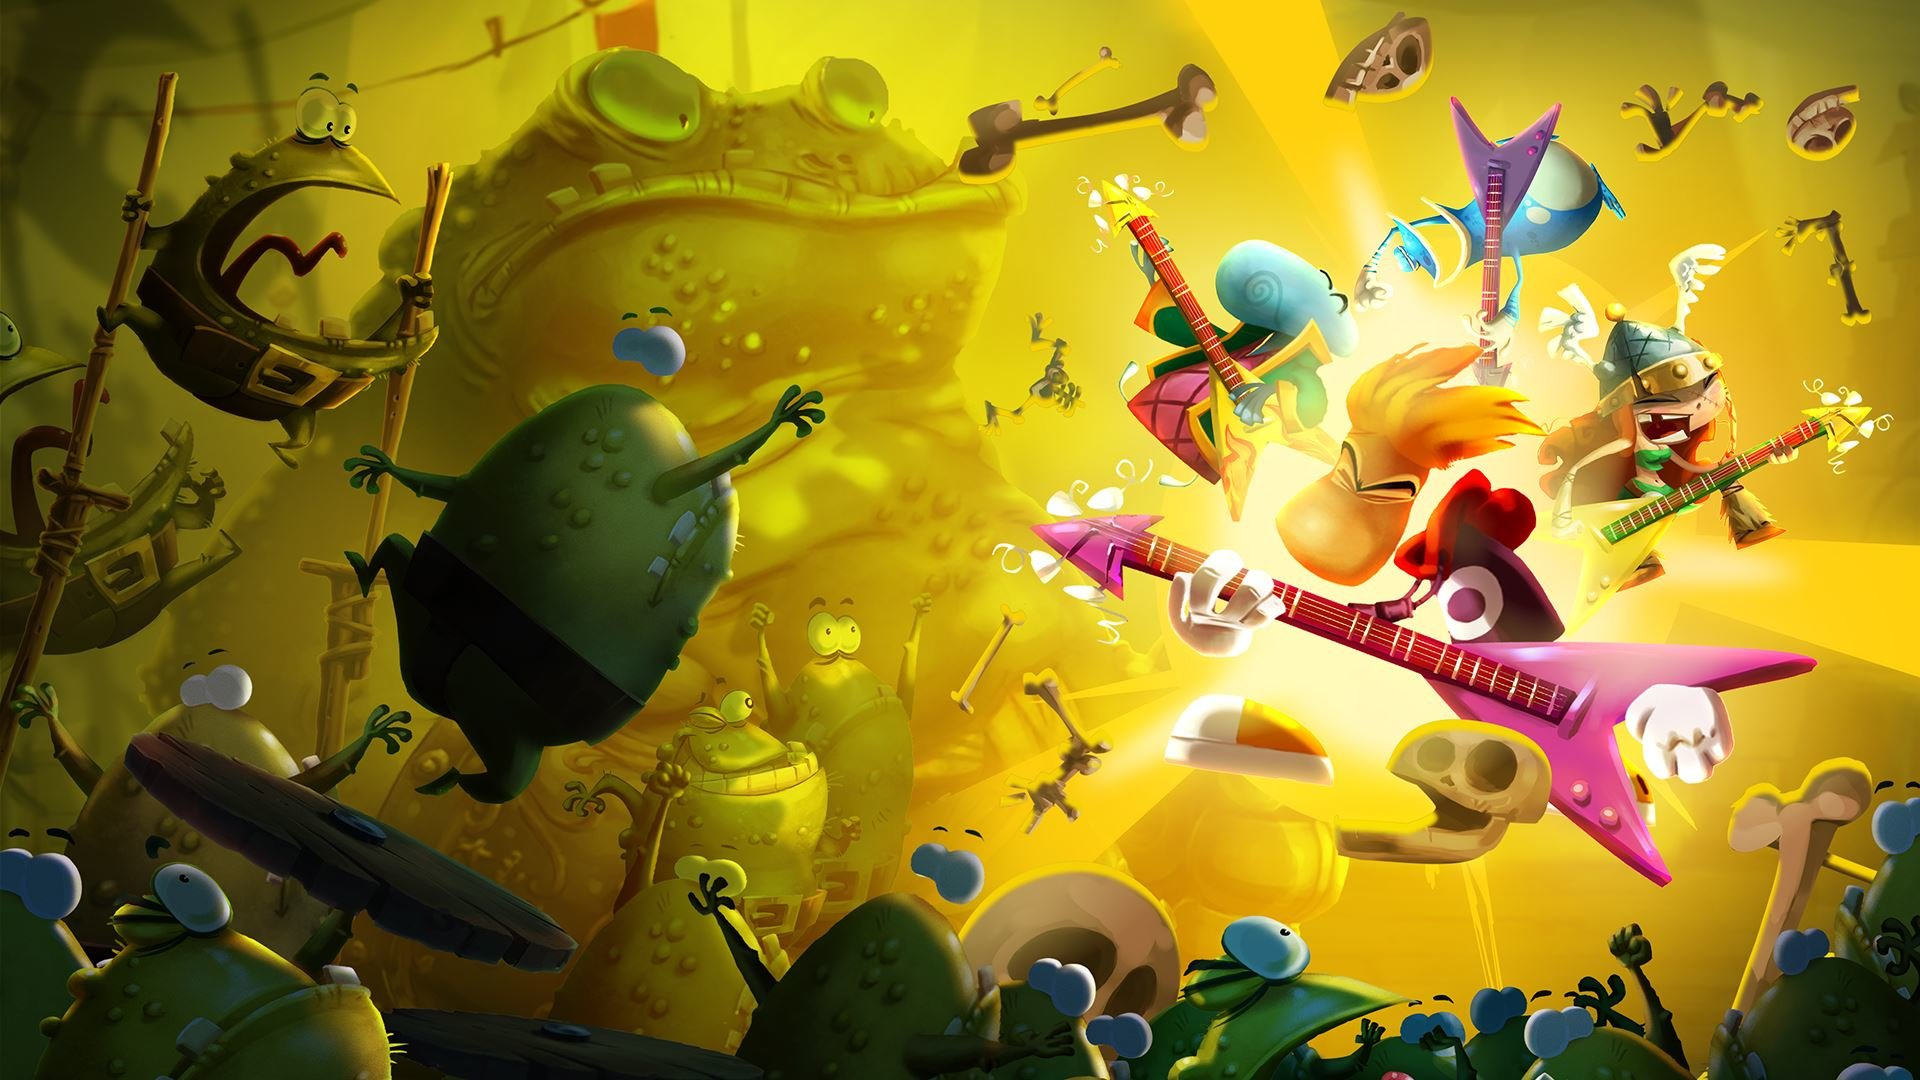 Free download Rayman Legends background ID:26539 full hd 1920x1080 for PC